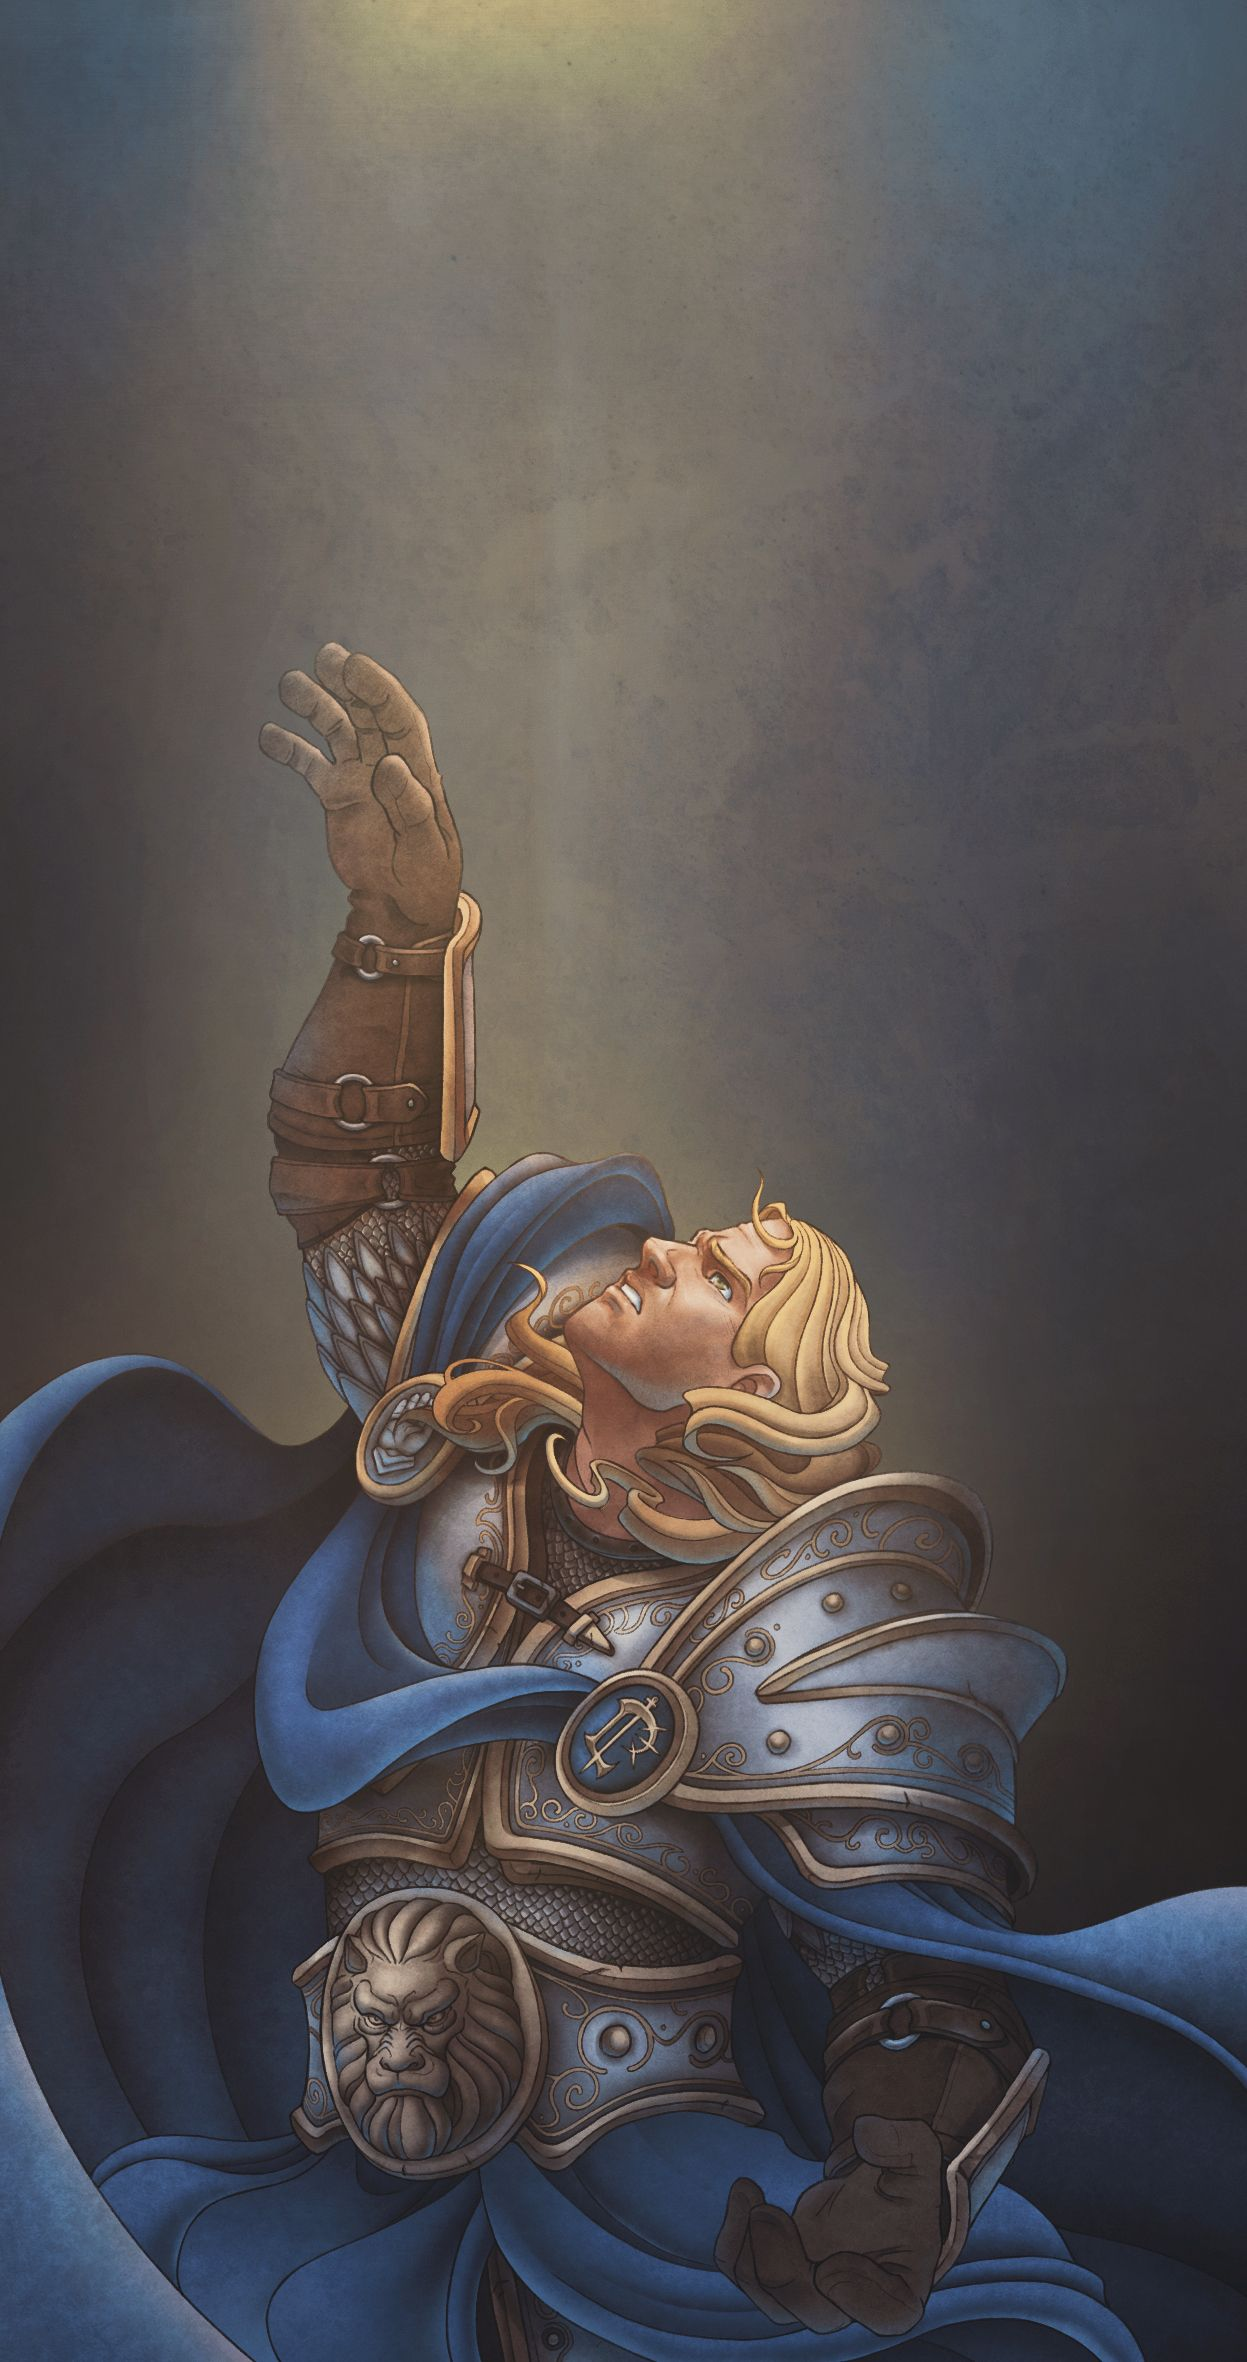 Arthas Menethil My Son No One Should Suffer So Much As You Had World Of Warcraft Characters World Of Warcraft World Of Warcraft Game The best site dedicated to analyzing heroes of the storm replay files. arthas menethil my son no one should